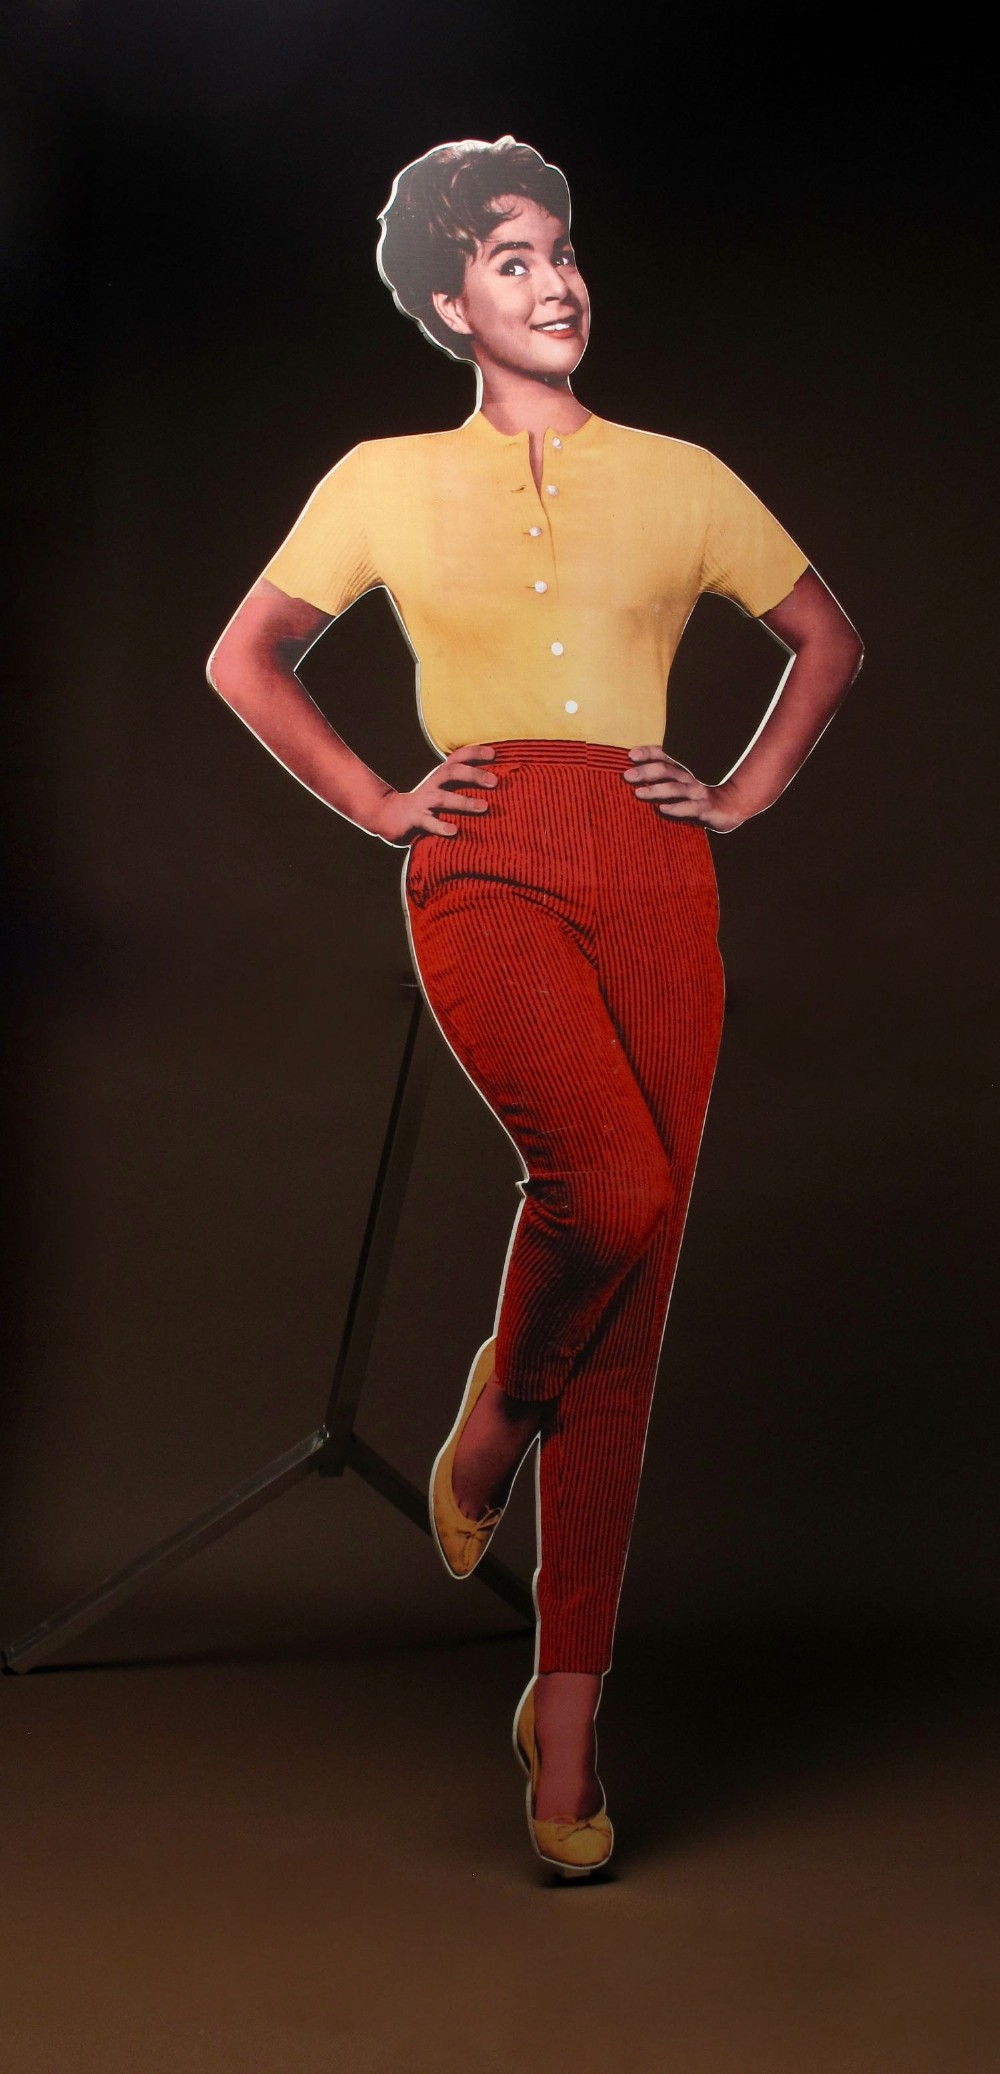 Conny Froboess Bilder two interesting life-size advertisement poster boards of the